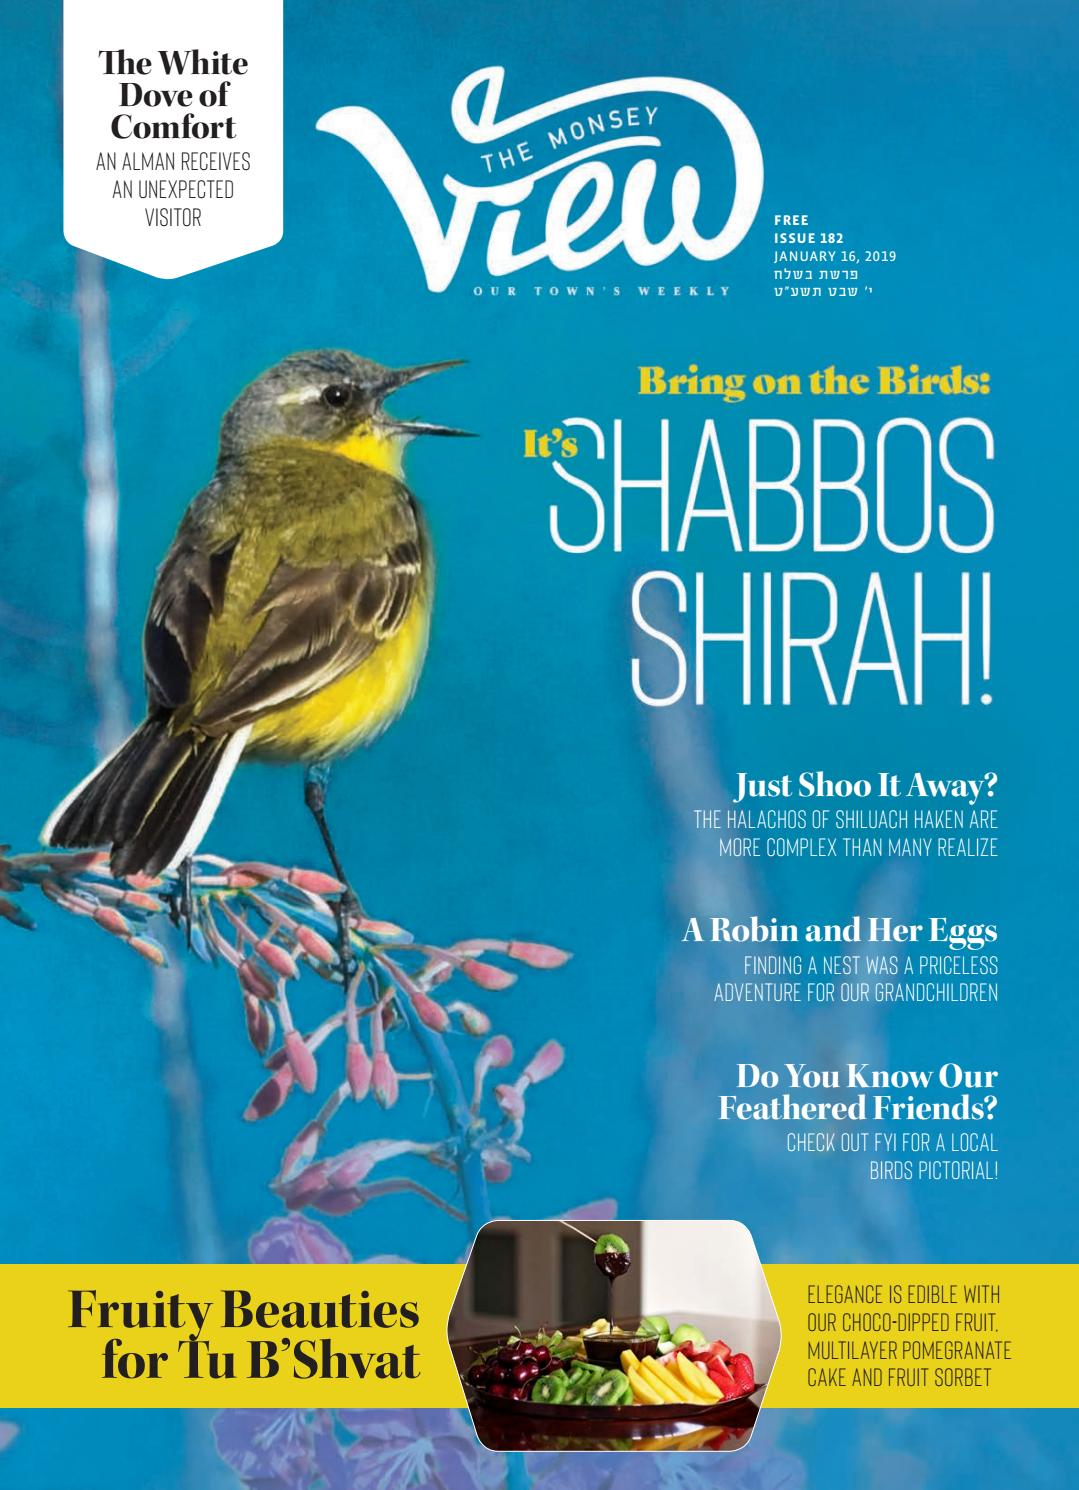 Issue 182 By The Monsey View Issuu